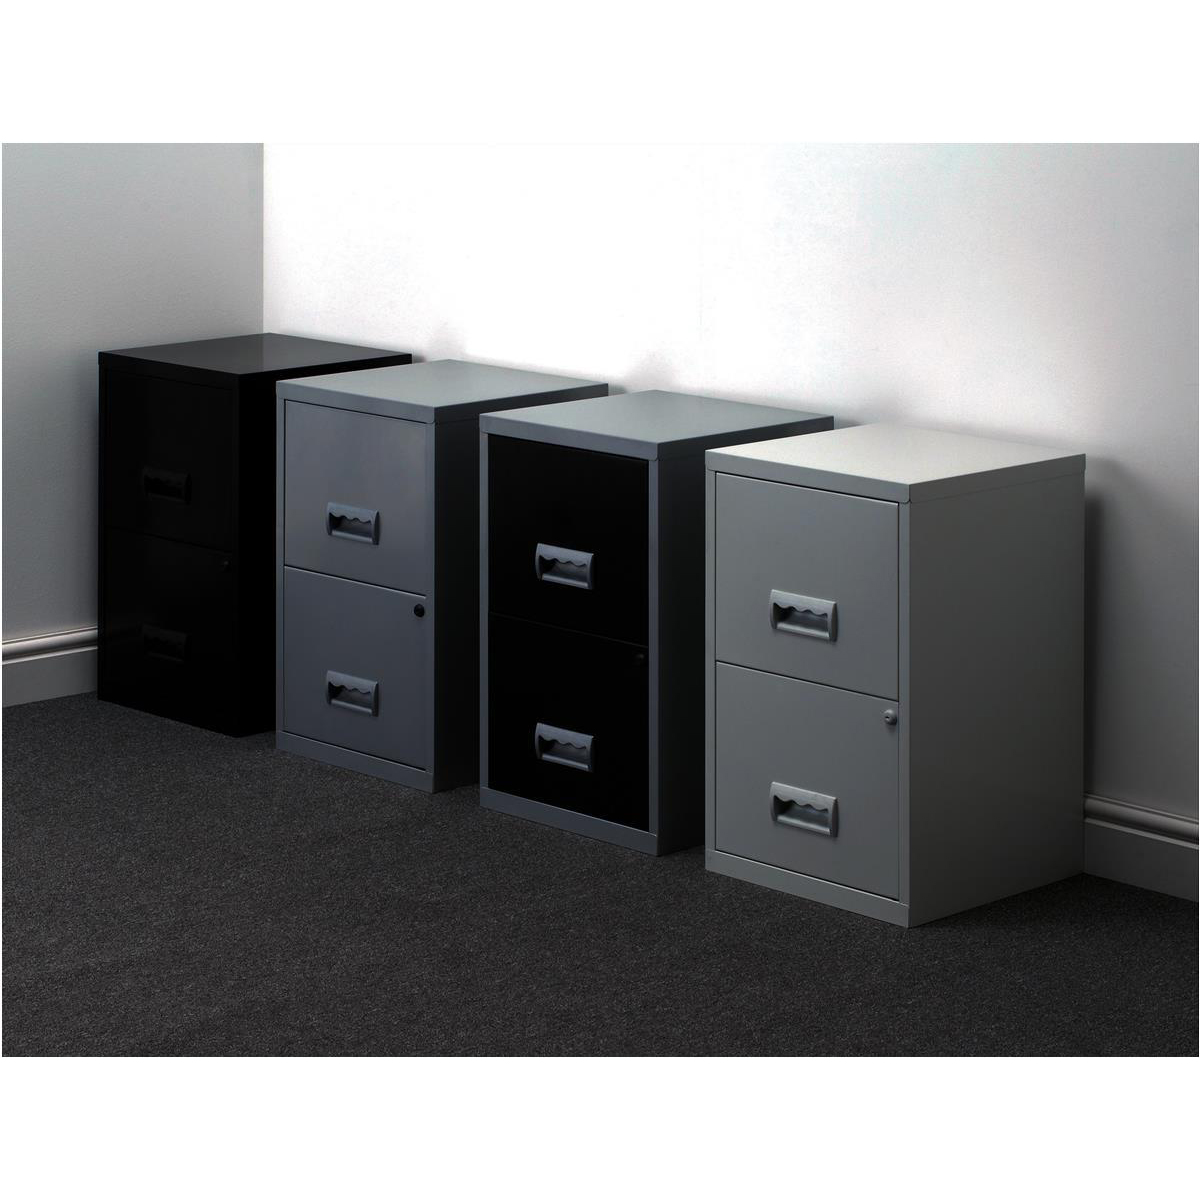 Filing Cabinet Steel 2 Drawer A4 400x400x660mm Ref 95010